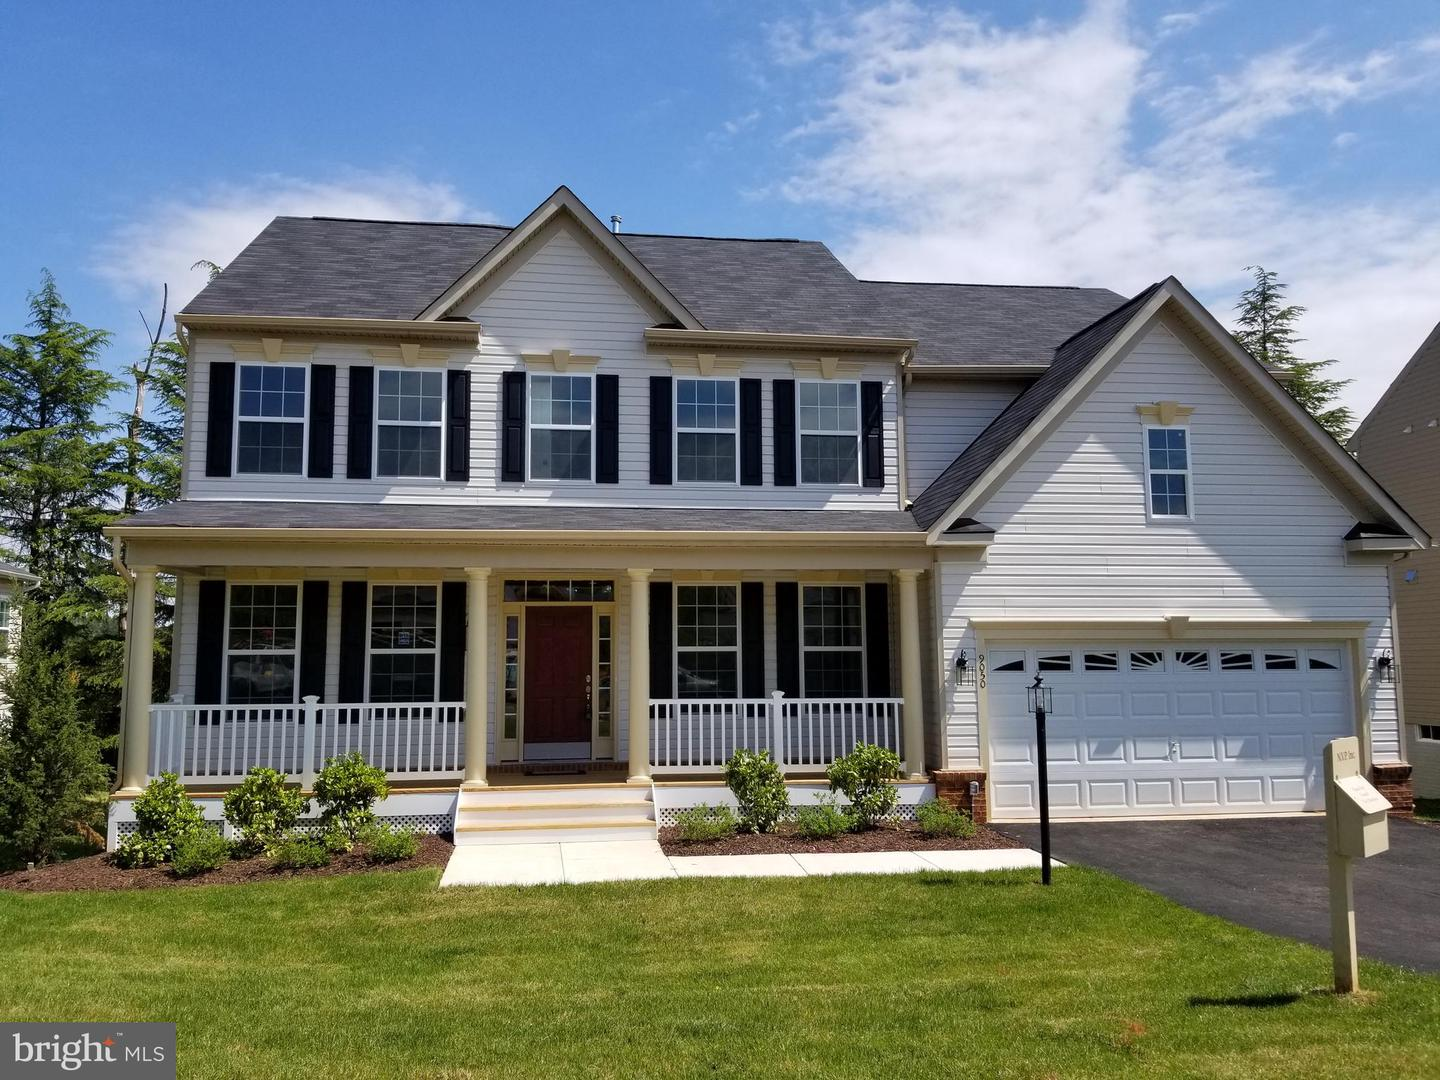 Single Family for Sale at 9050 Stone Crest Dr #10 Warrenton, Virginia 20186 United States